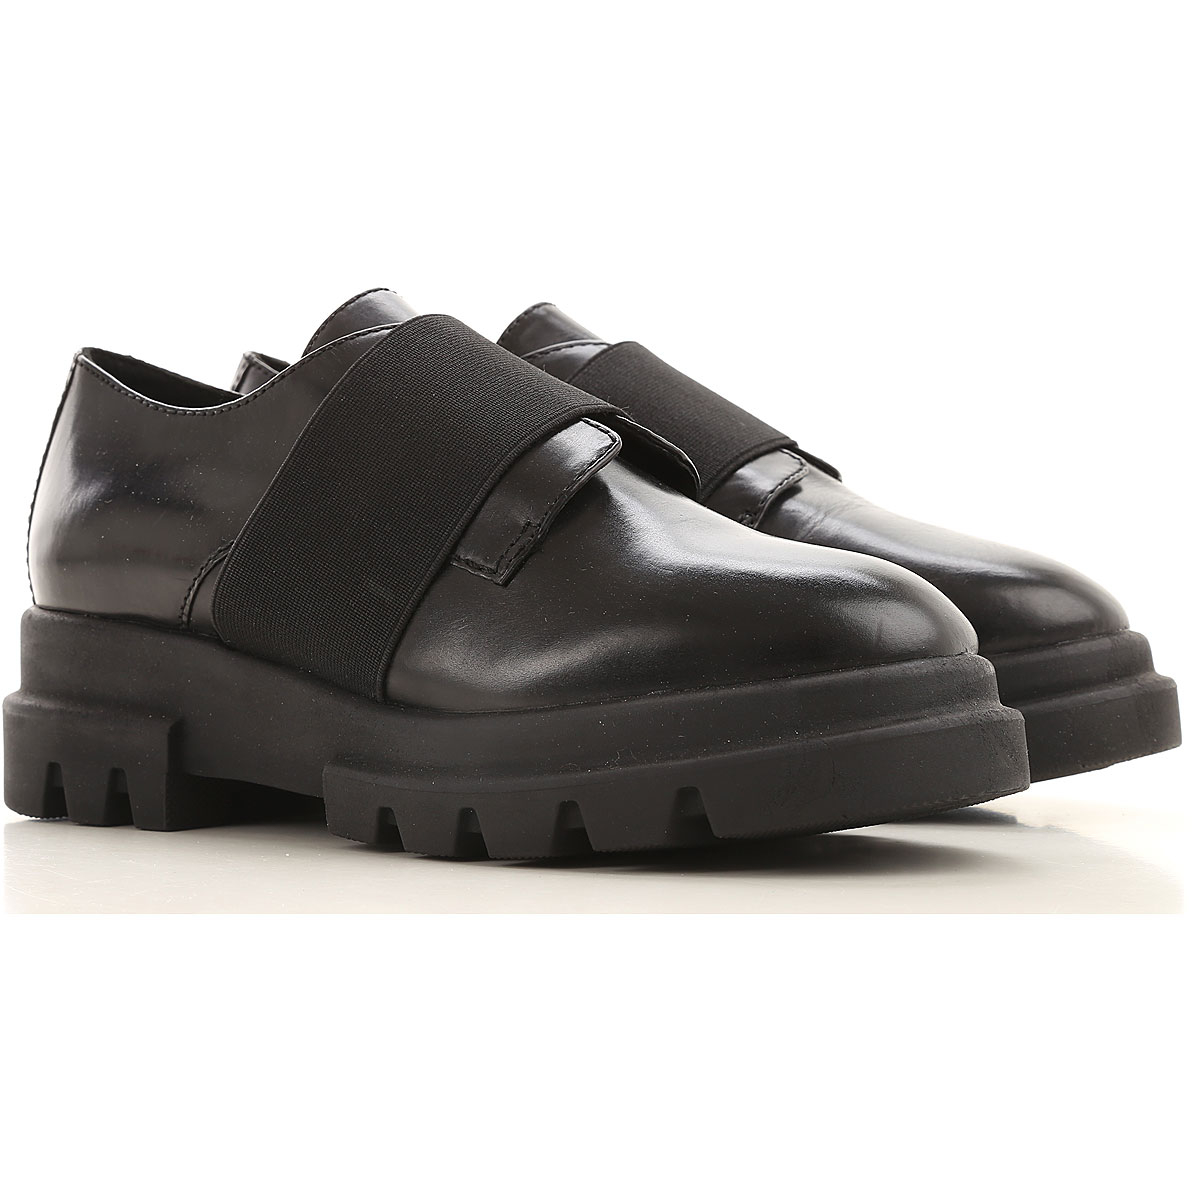 Elvio Zanon Loafers for Women On Sale in Outlet, Black, Leather, 2019, 11 6 7 8